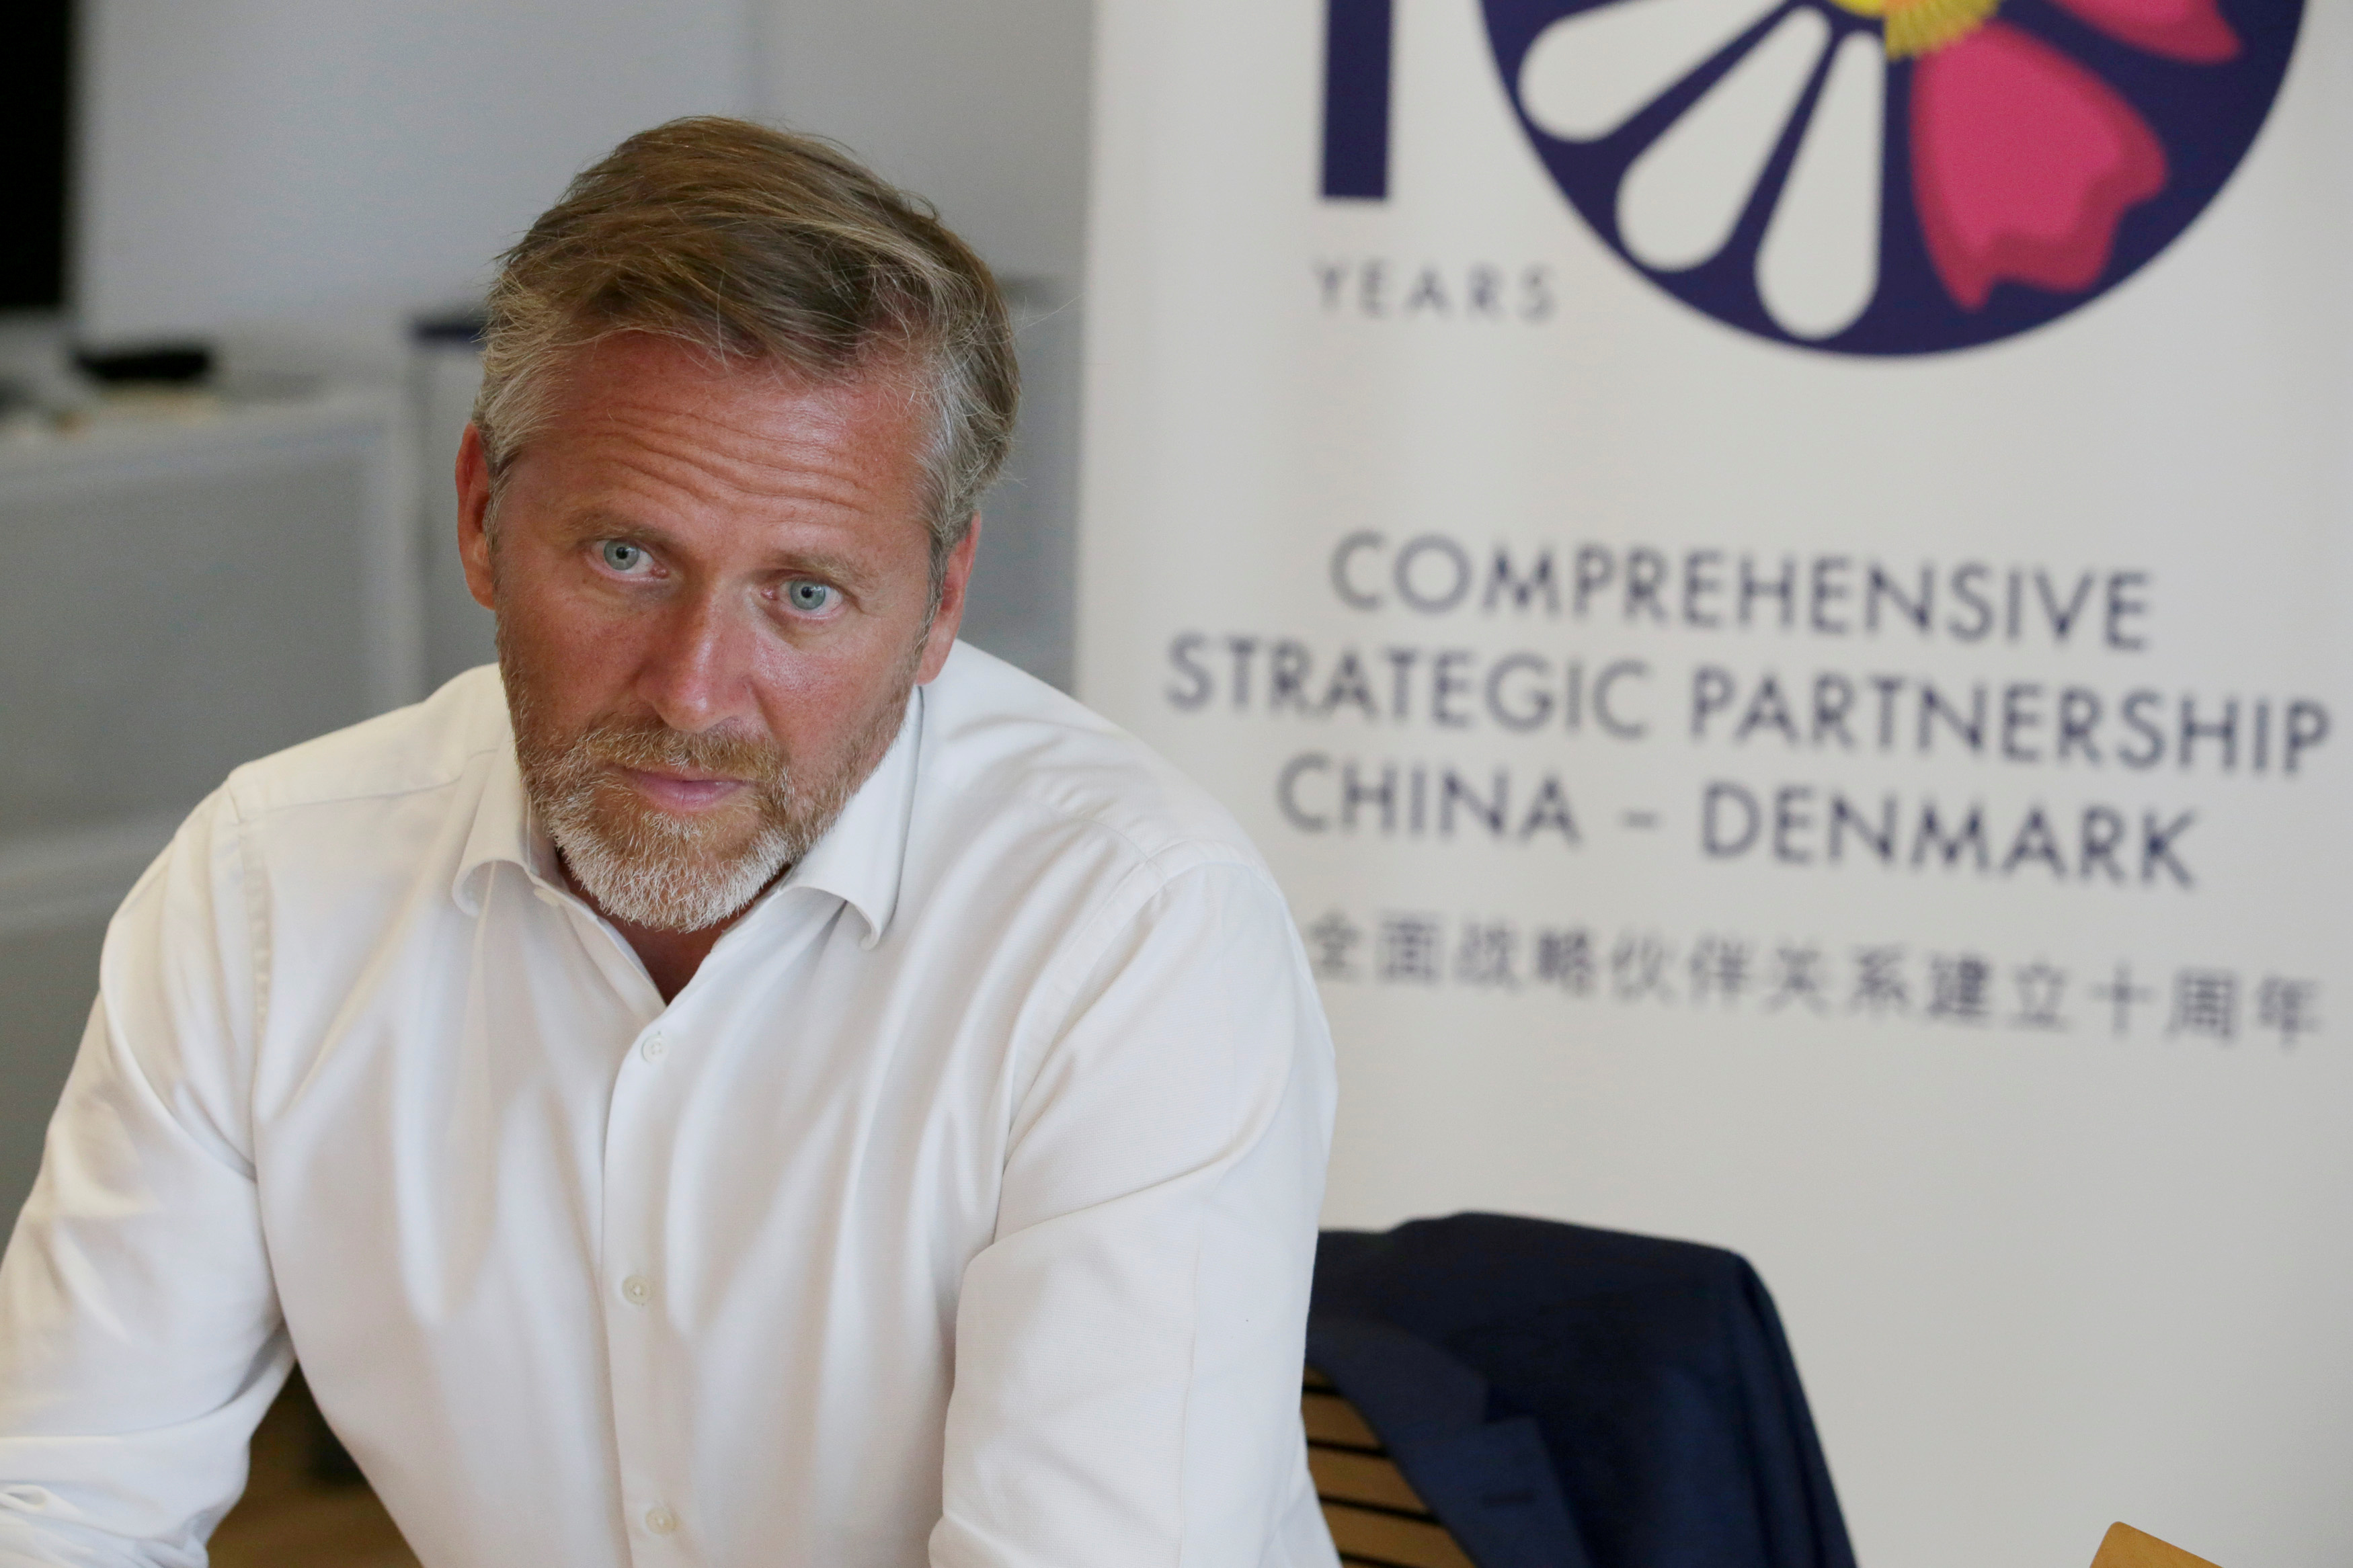 FILE PHOTO: Danish Foreign Minister Anders Samuelsen attends a news conference in Beijing, China June 21, 2018. REUTERS/Jason Lee/File Photo